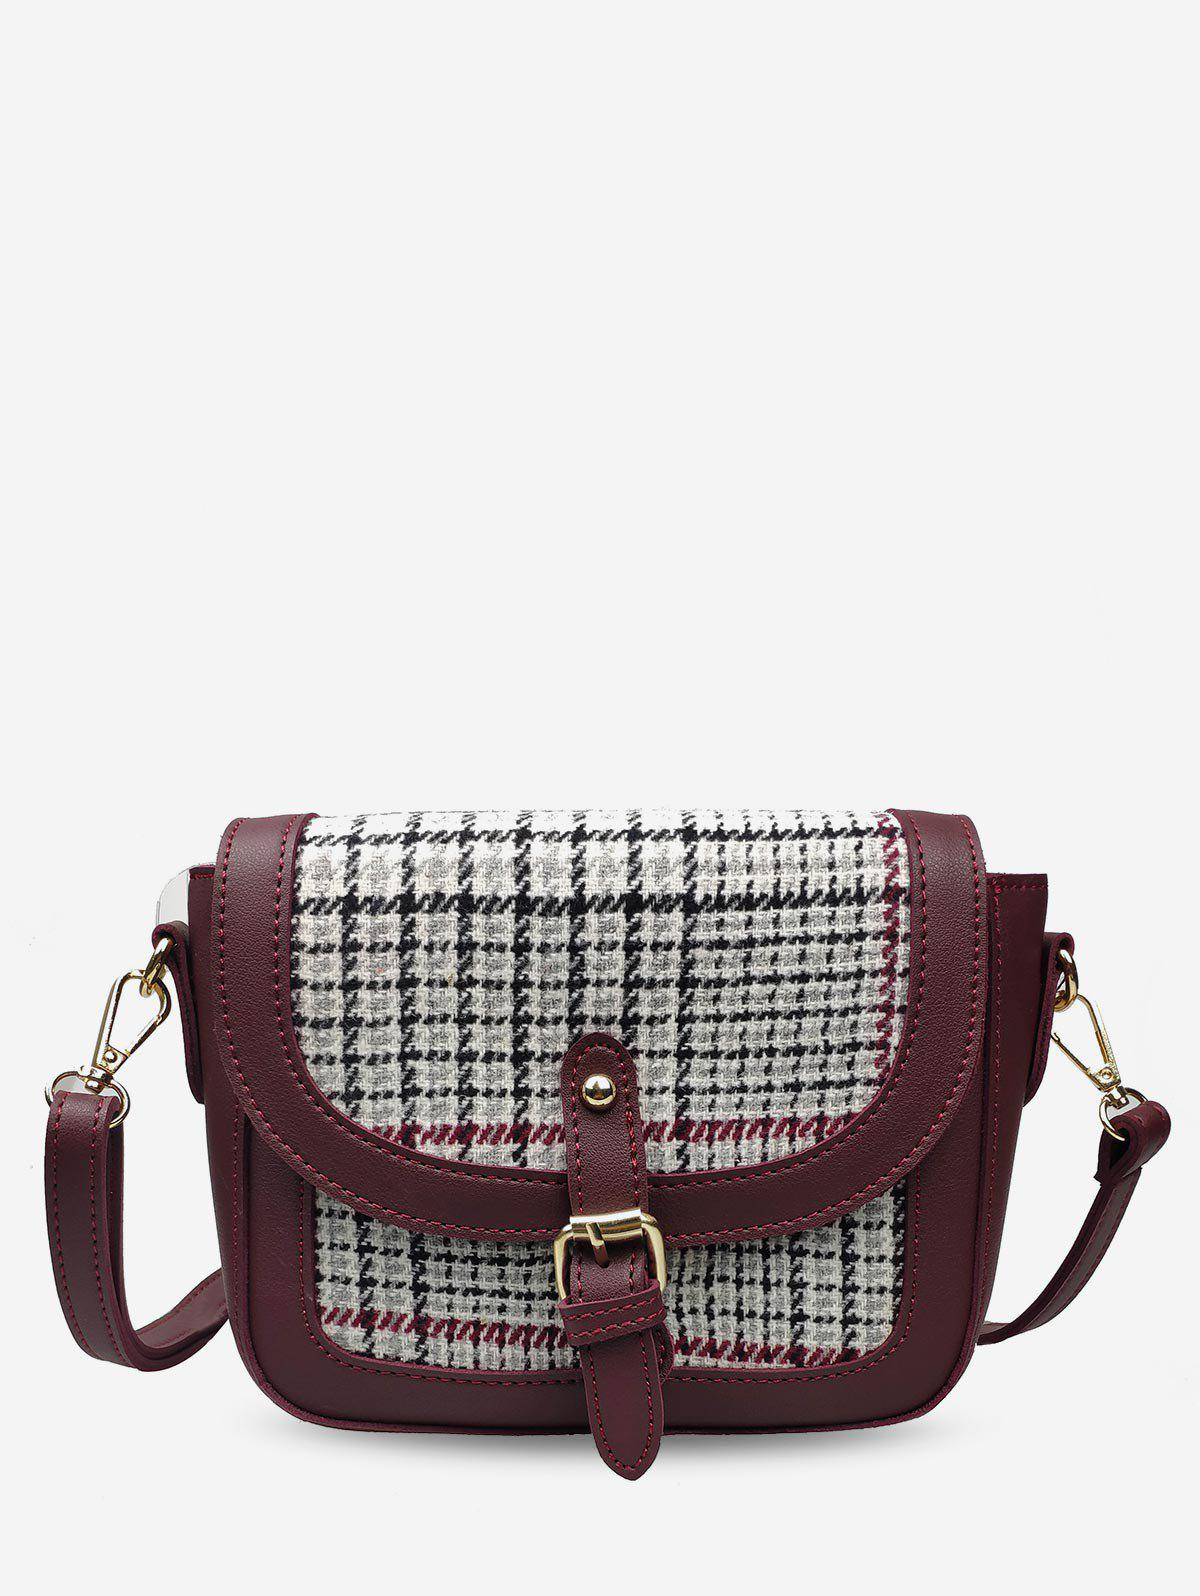 Sale Joint Leather Small Shoulder Bag